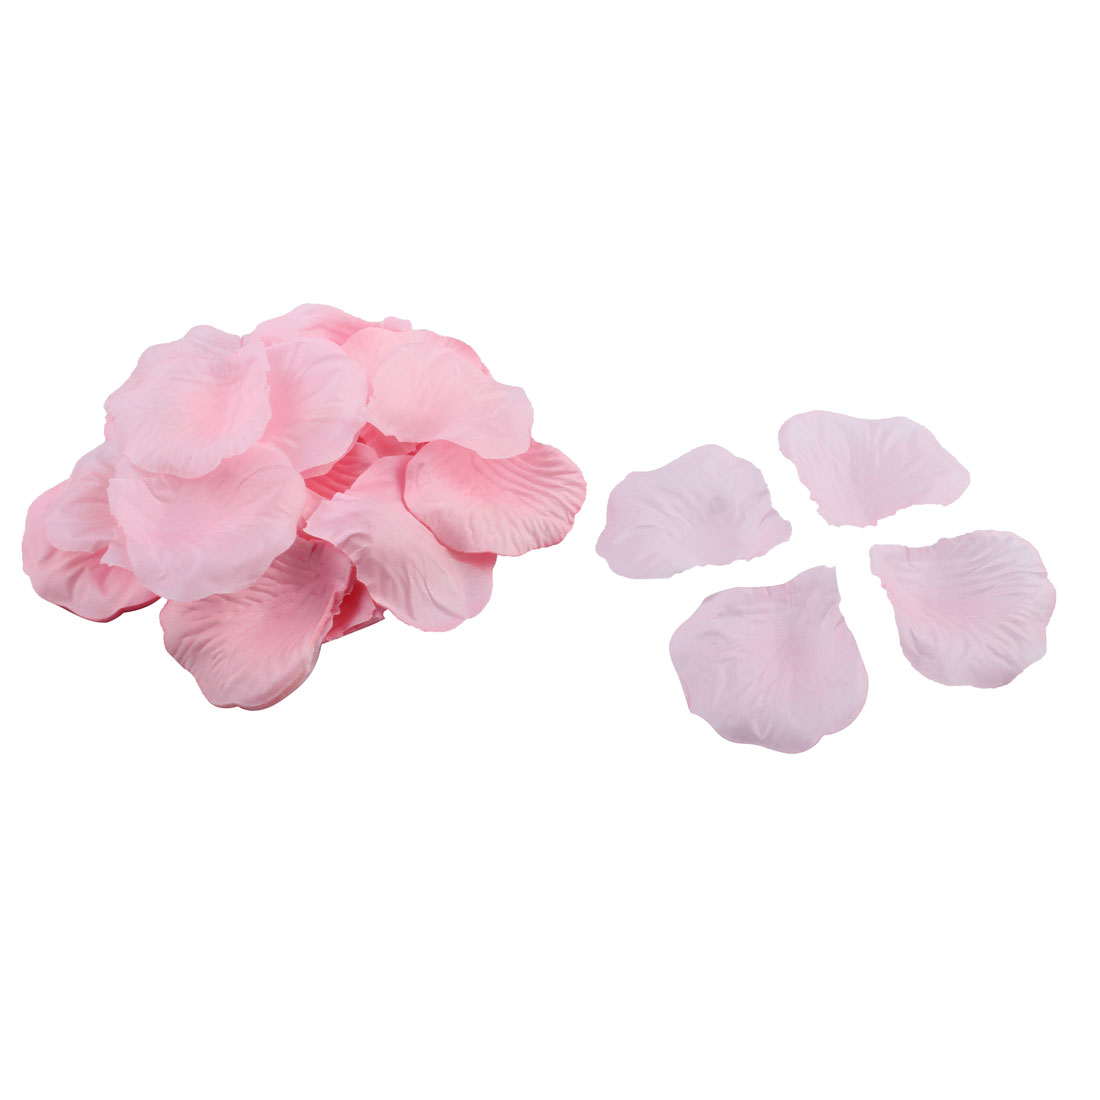 Pink 100 Pcs Manmade Fabric Rose Petal Ornament for Wedding Festival Bridal